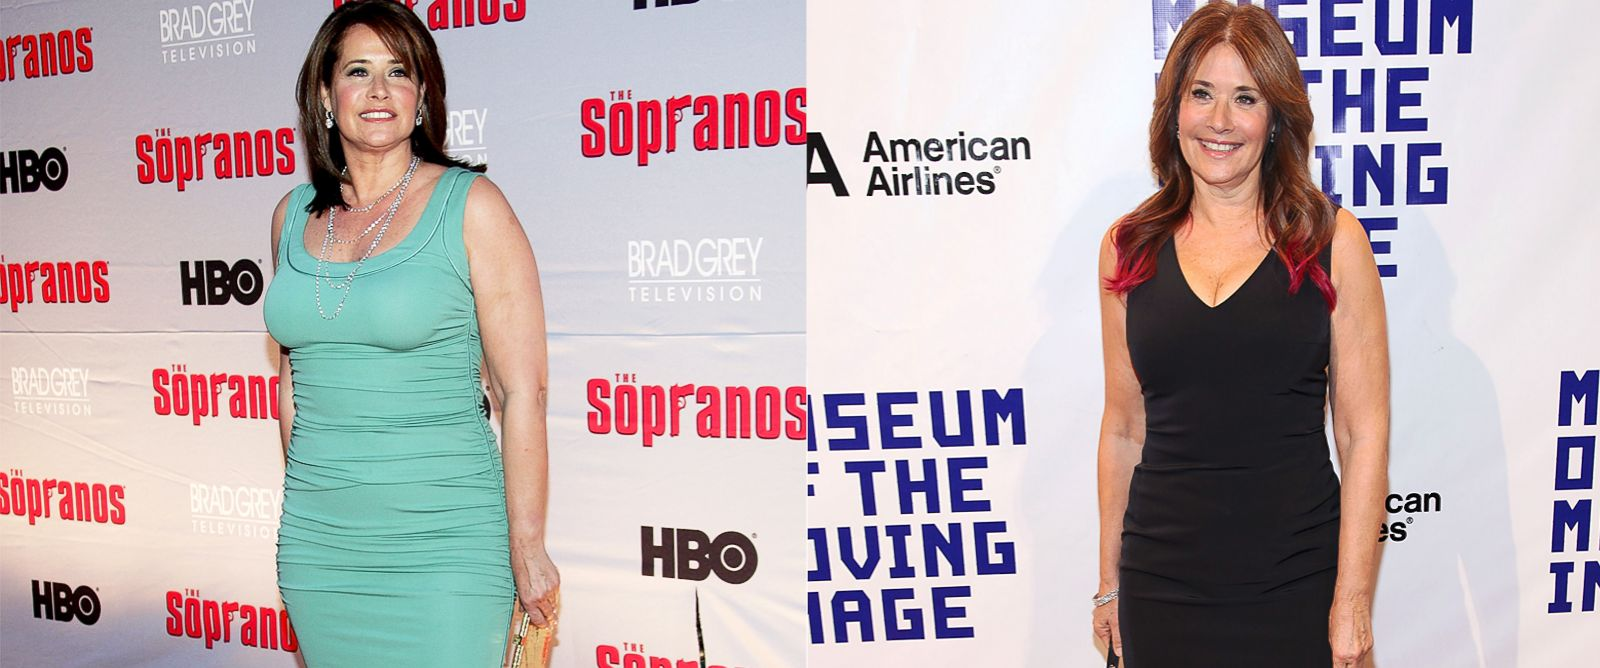 PHOTO: Left, actress Lorraine Bracco attends the HBO premiere of The Sopranos at Radio City Music Hall in this March 27, 2007, file photo, right; Lorraine Bracco attends the Museum Of Moving Image Salutes Hugh Jackman on Dec. 11, 2012.